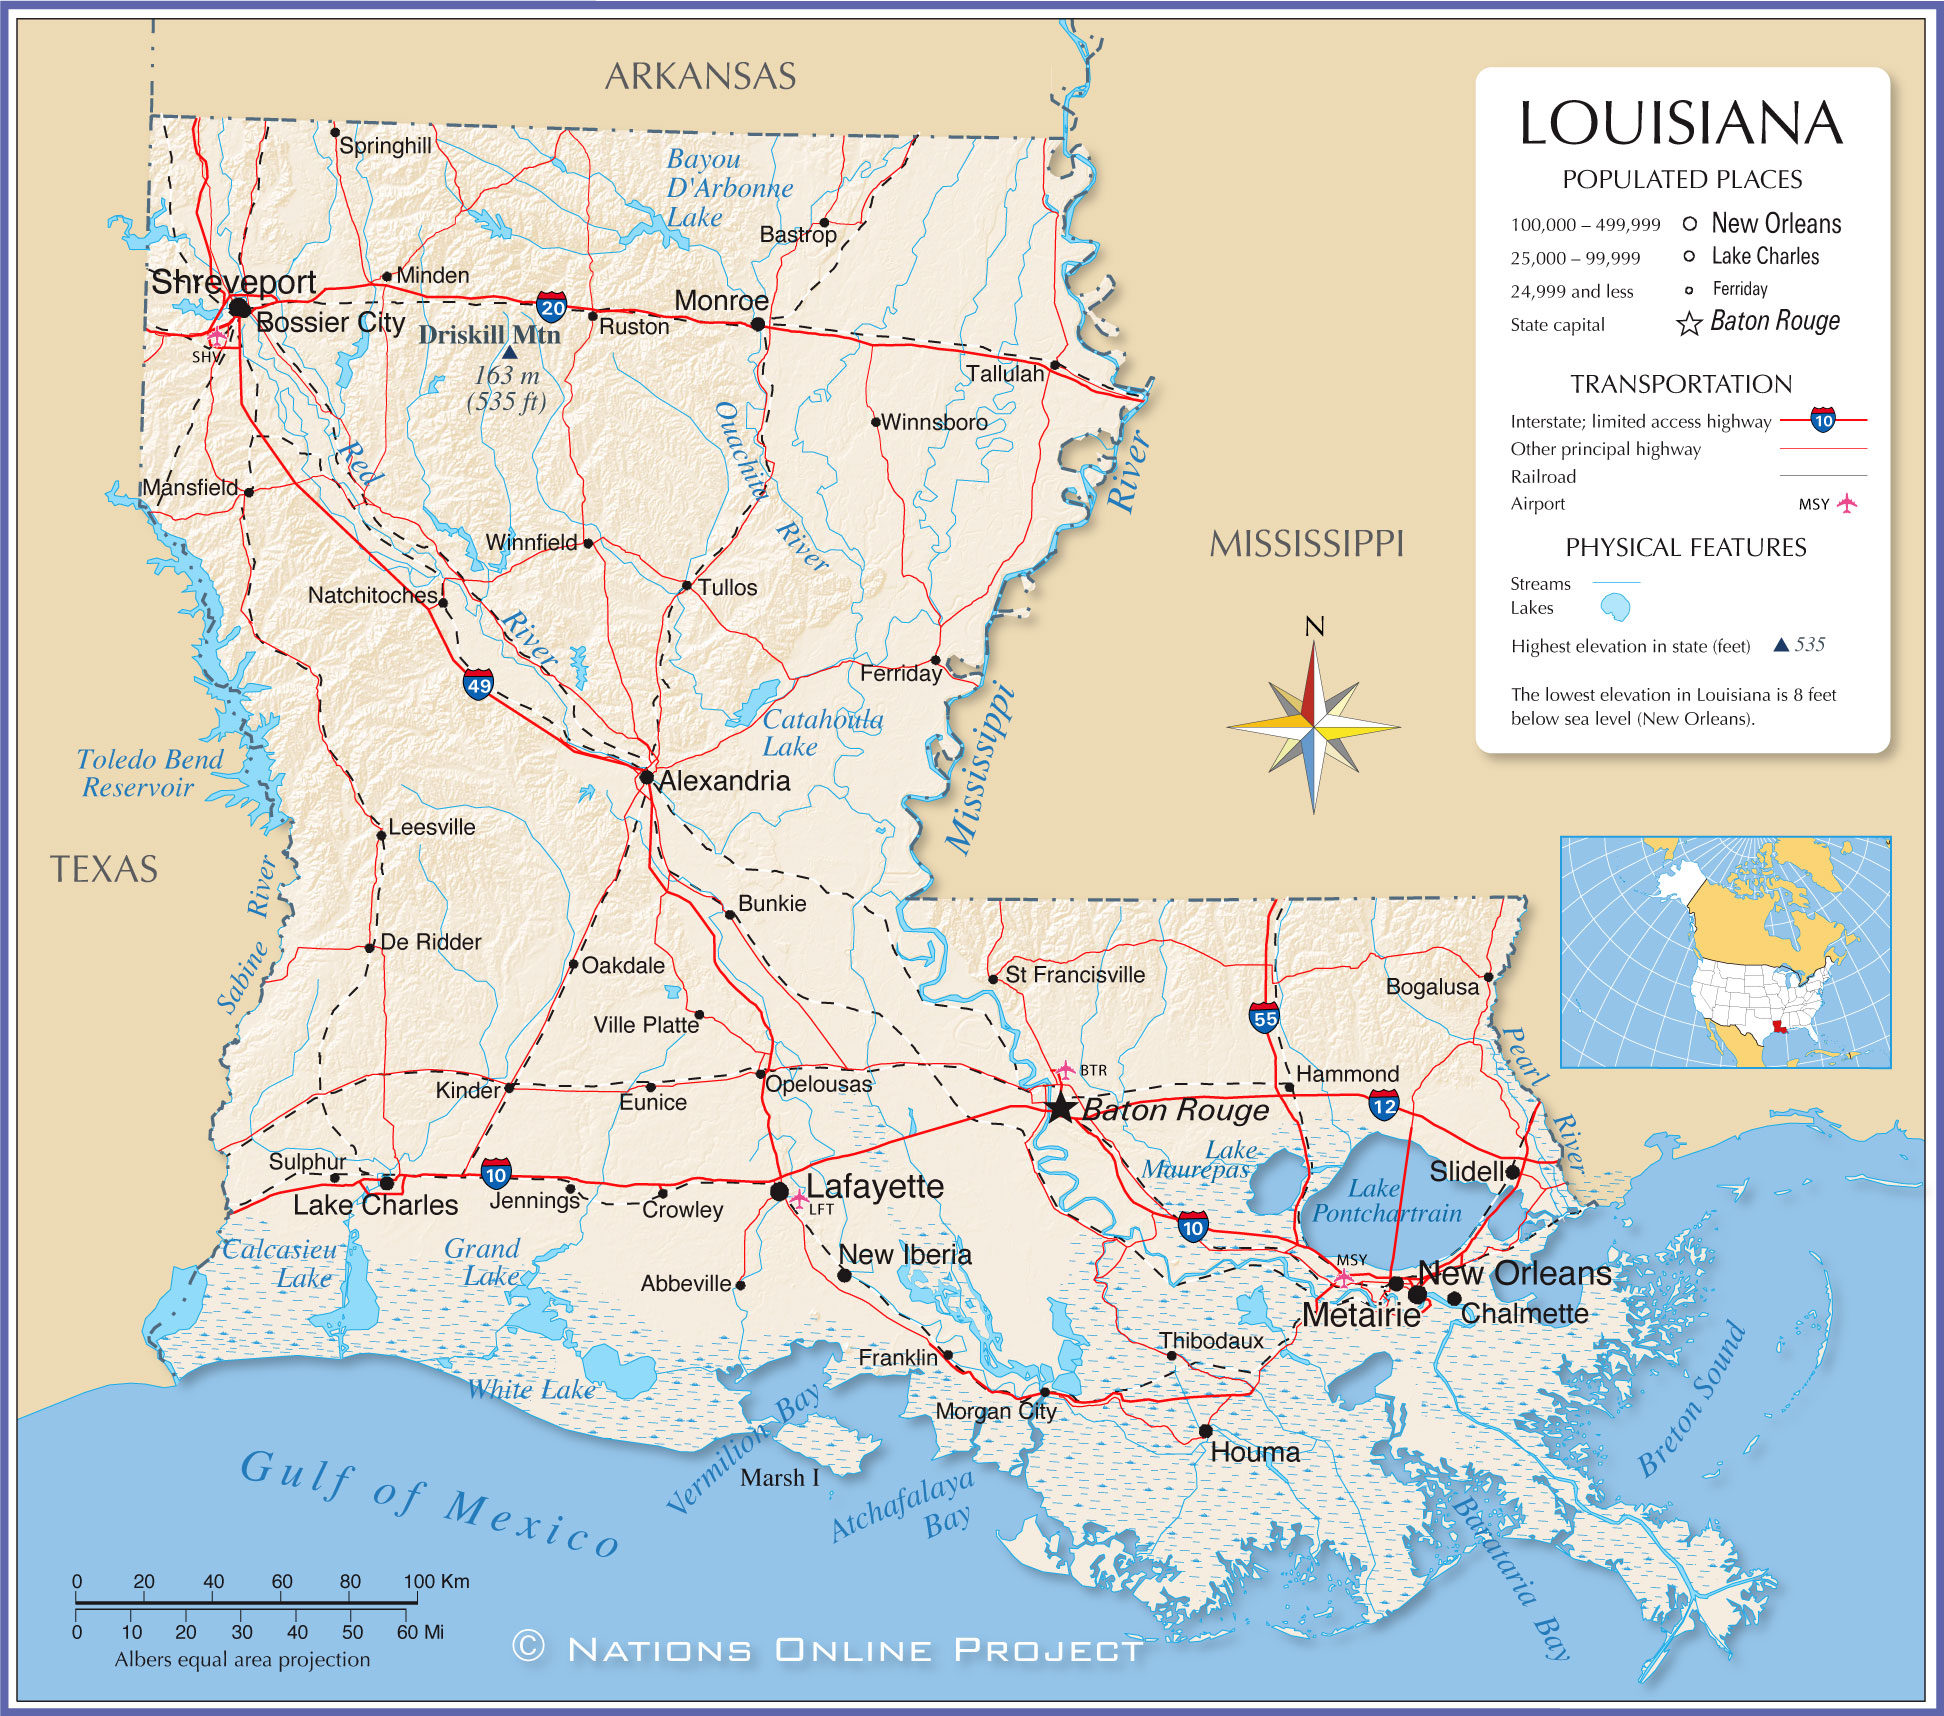 Reference Map Of Louisiana USA Nations Online Project - New orleans in map of usa